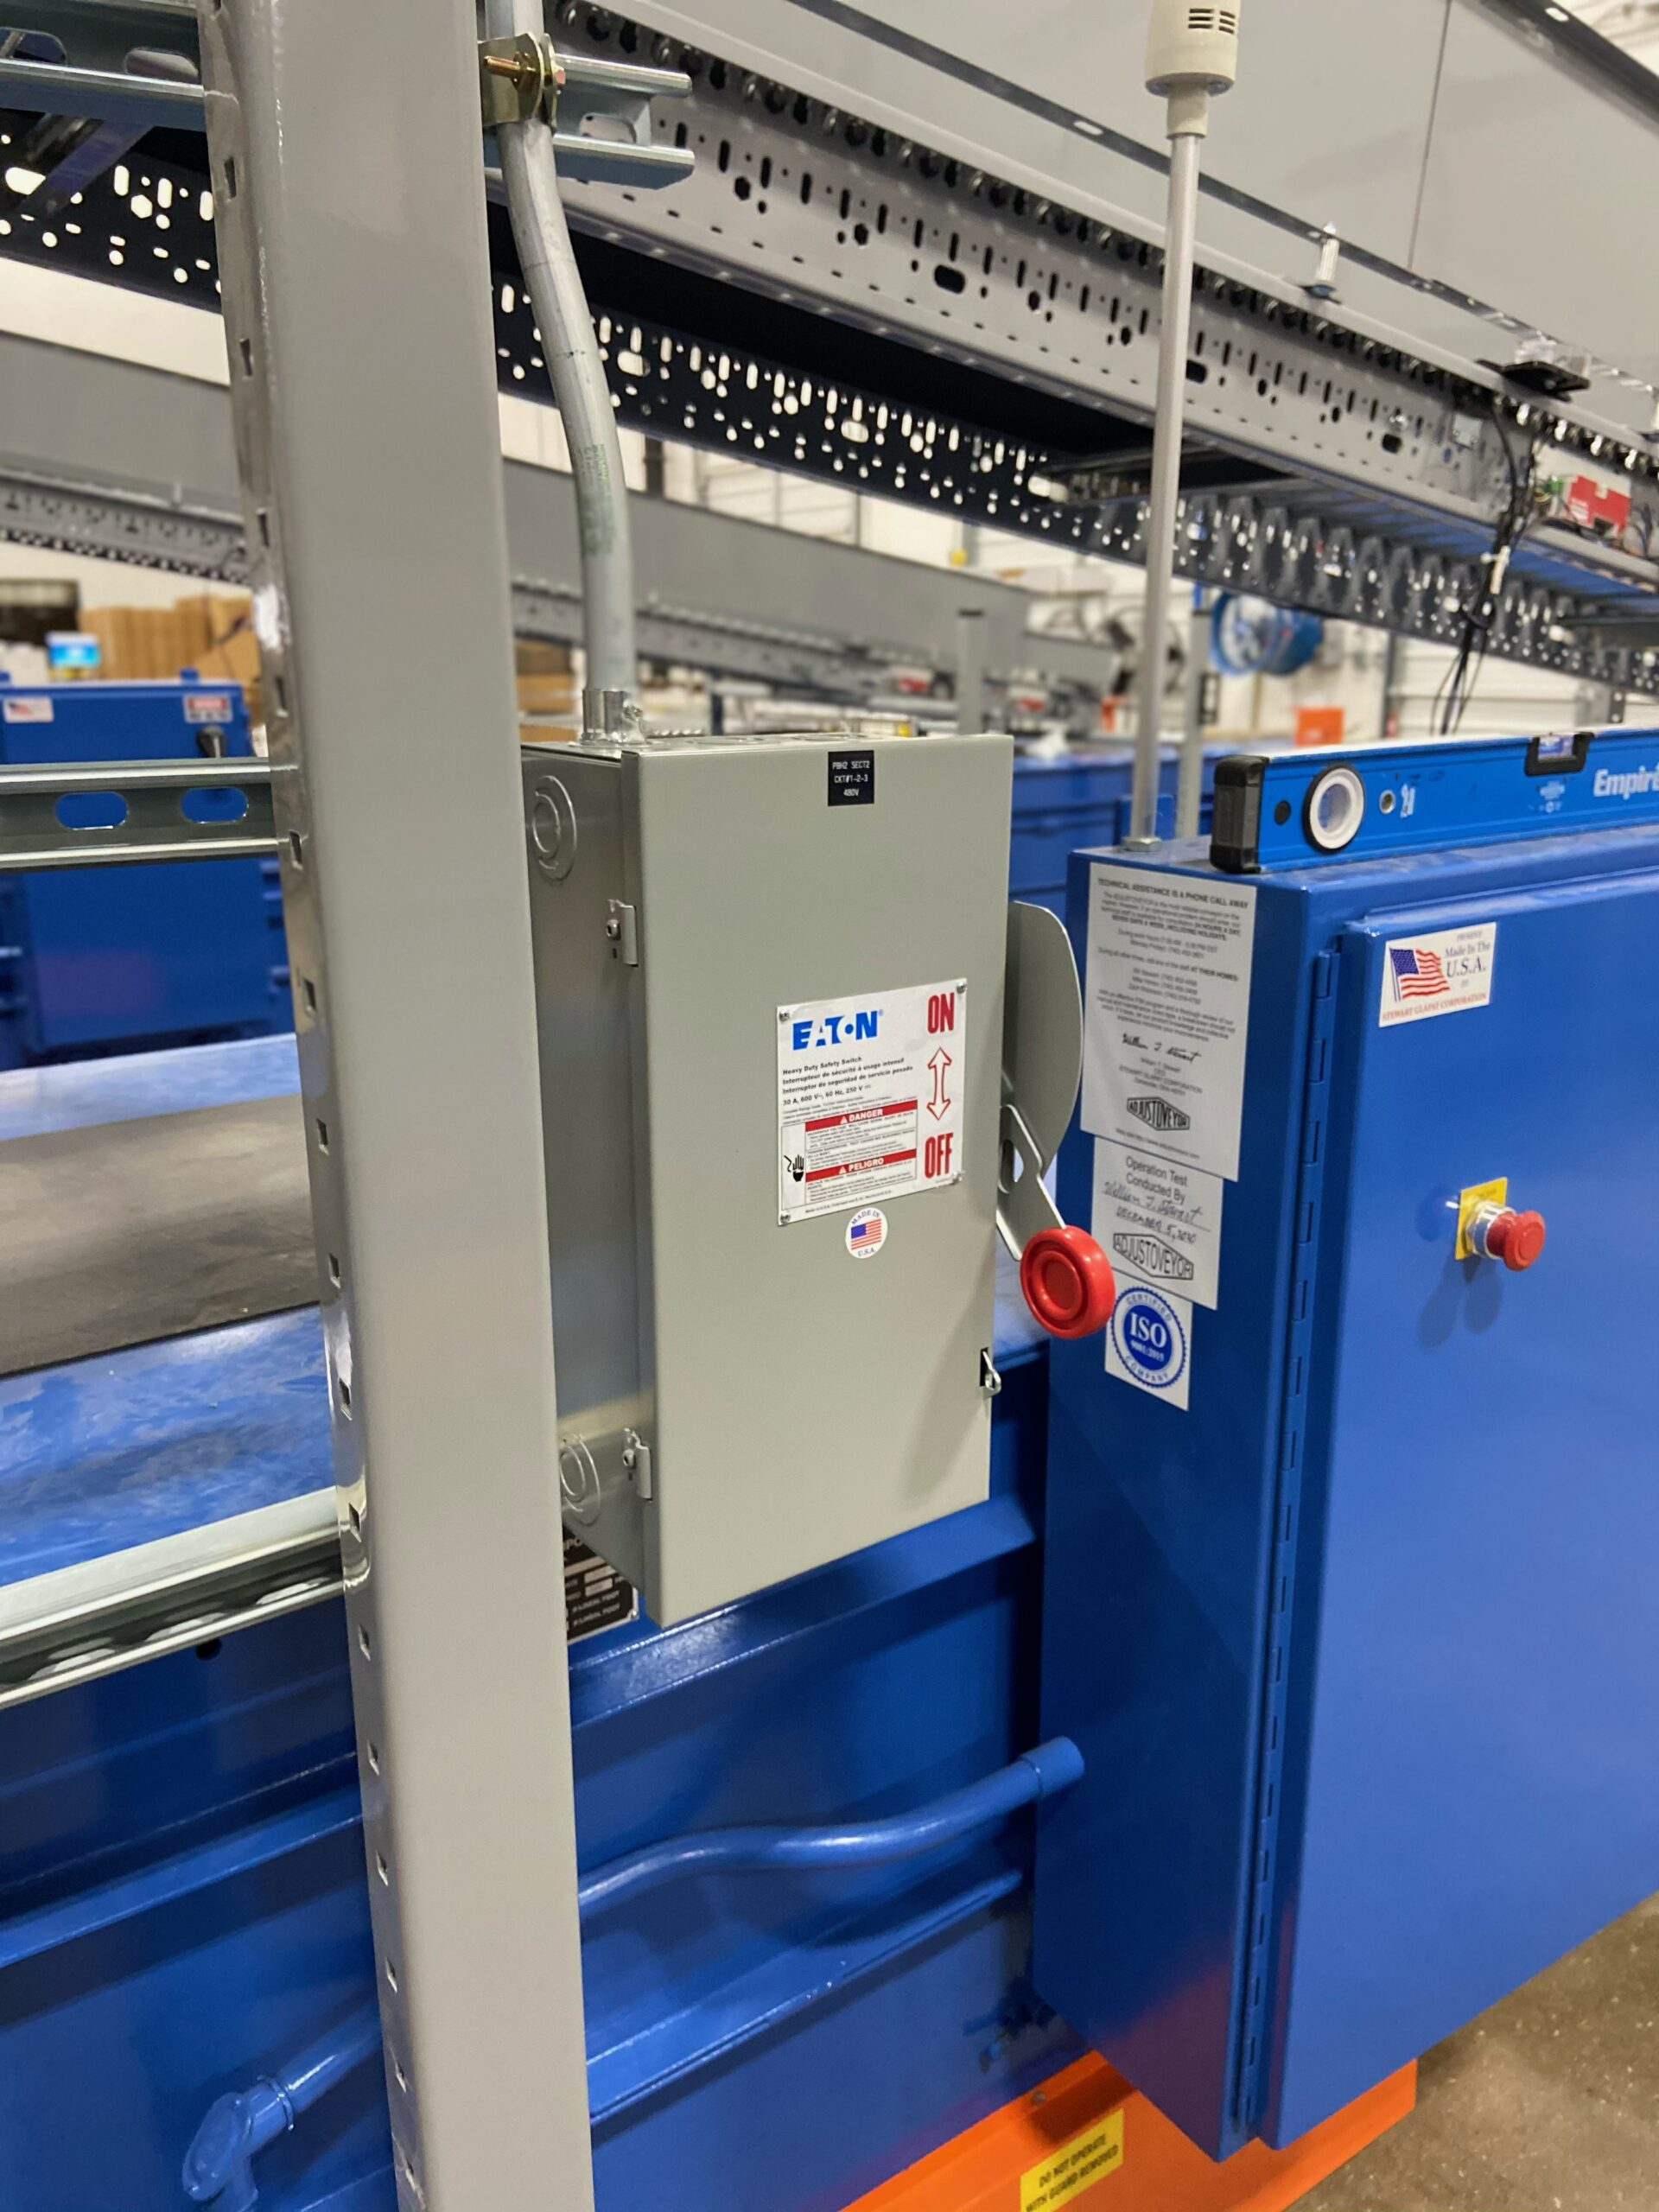 On/Off switch for conveyer belt